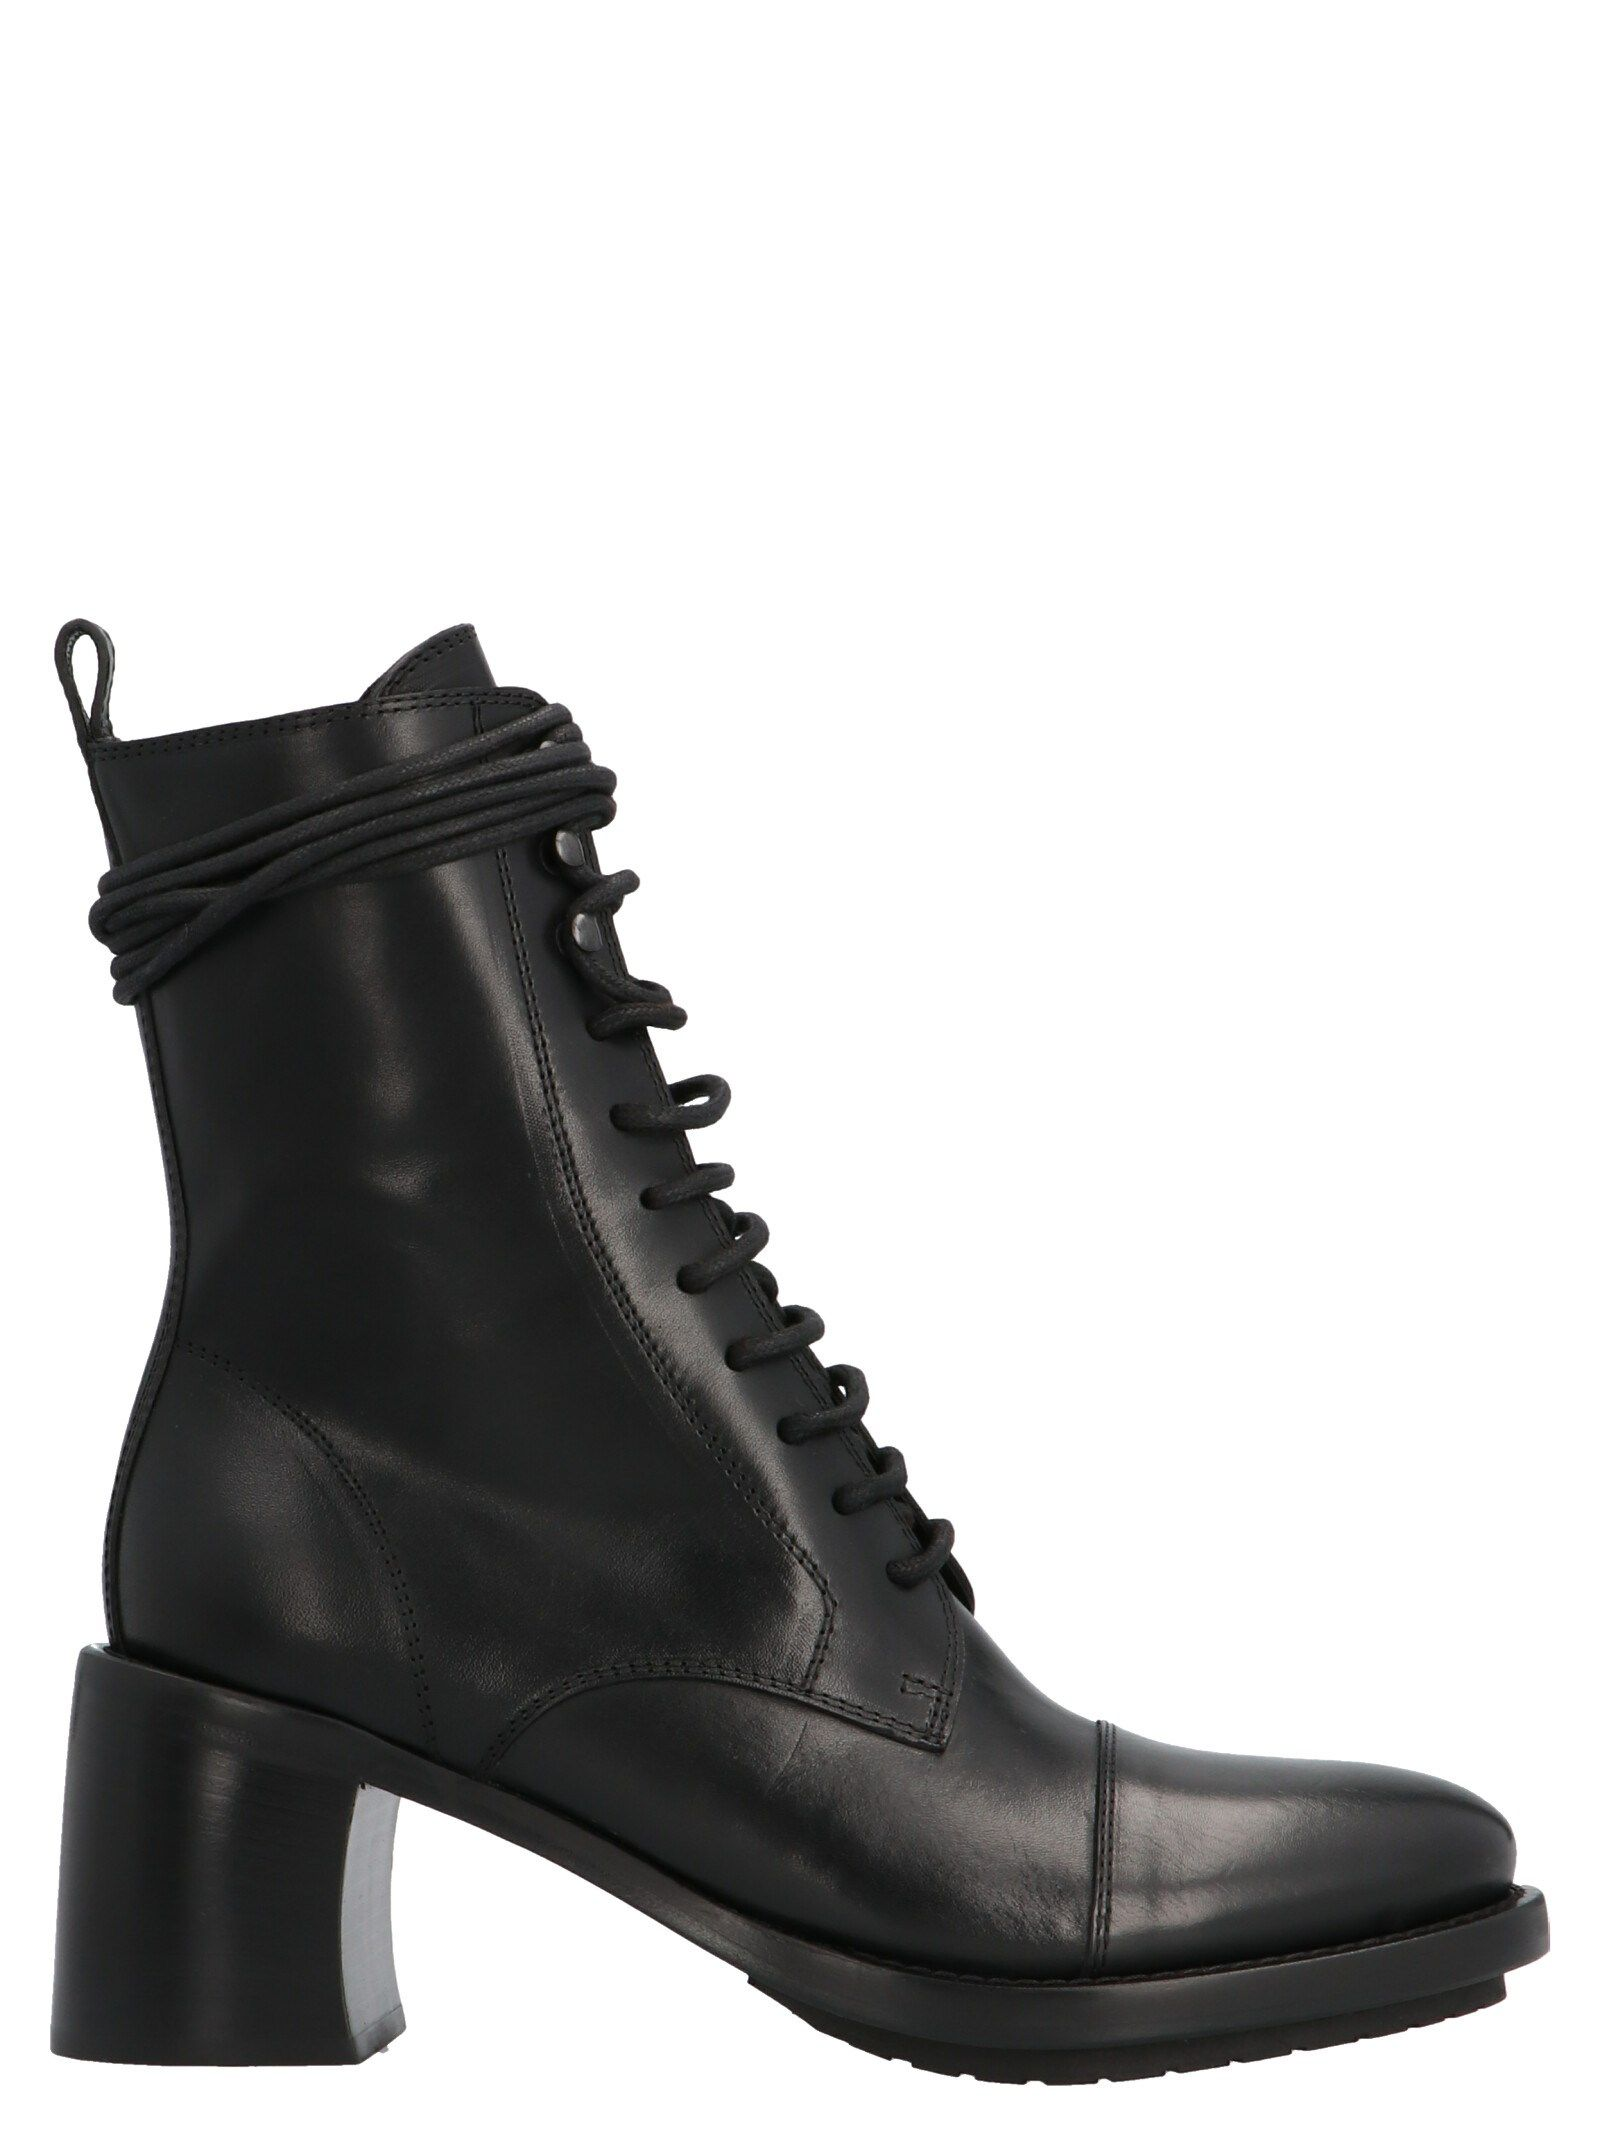 Ann Demeulemeester Leathers ANN DEMEULEMEESTER WOMEN'S BLACK ANKLE BOOTS